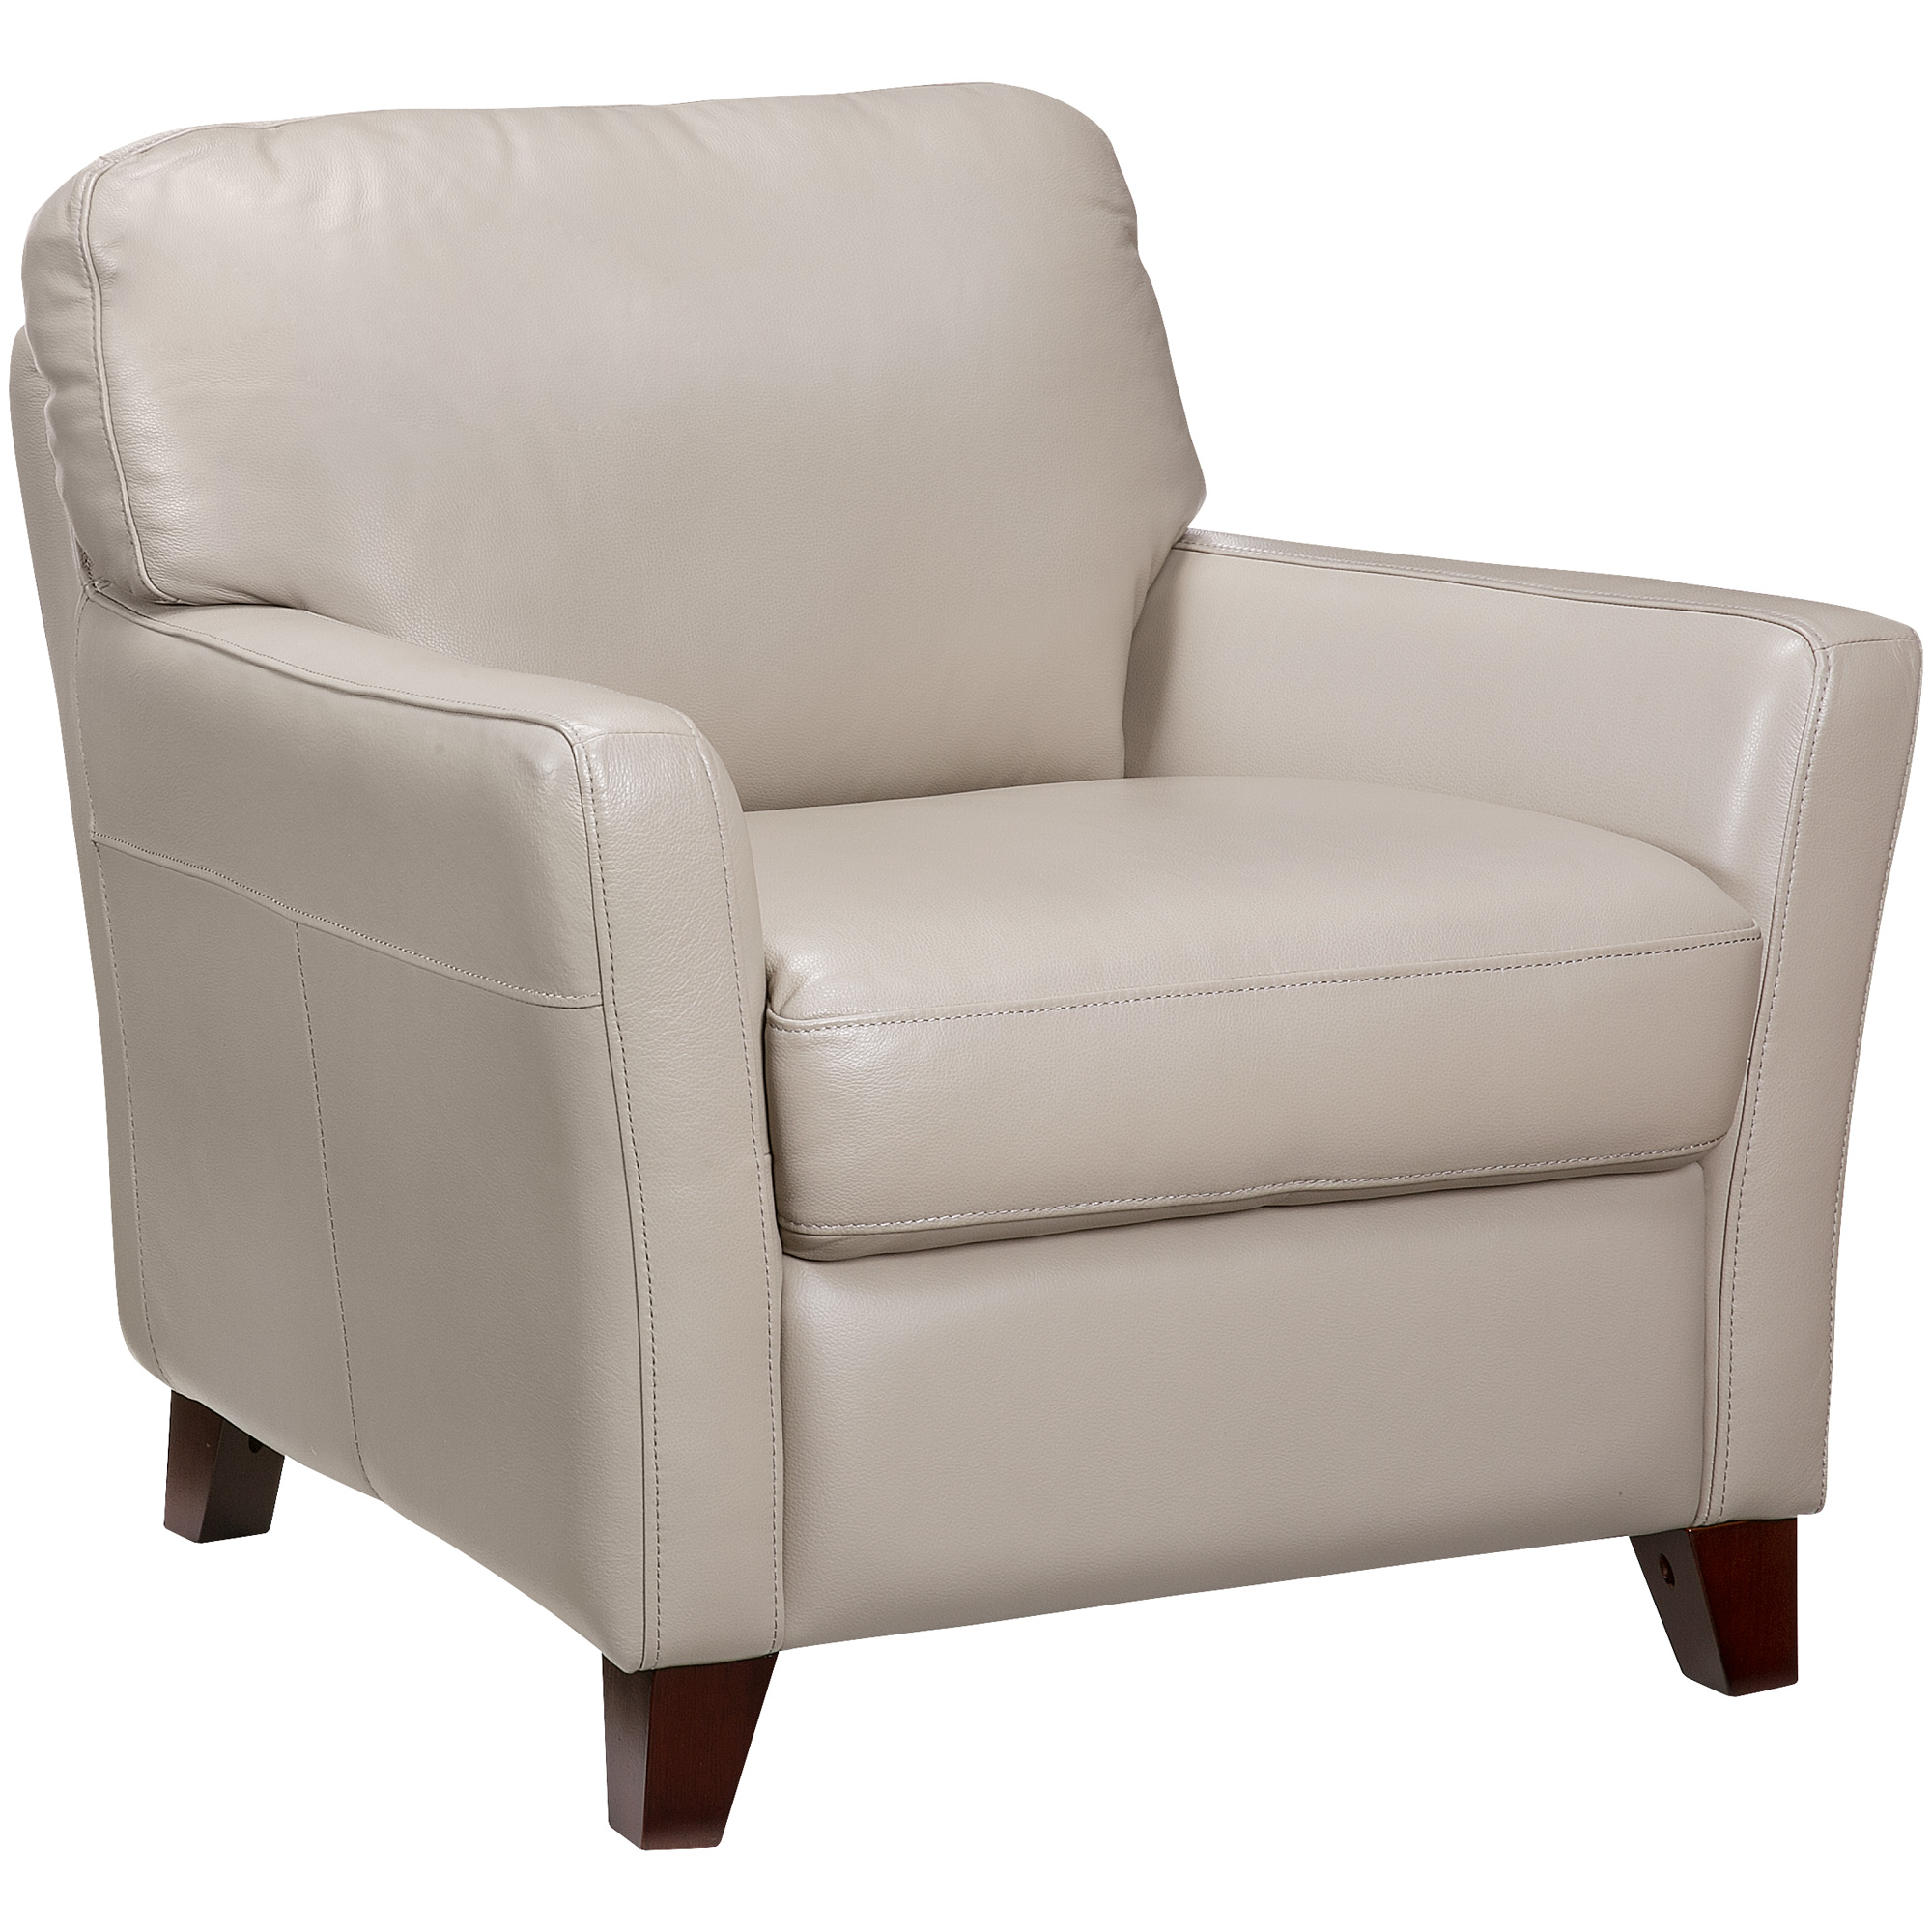 aqua accent chair bath chairs for adults walmart slumberland furniture fender